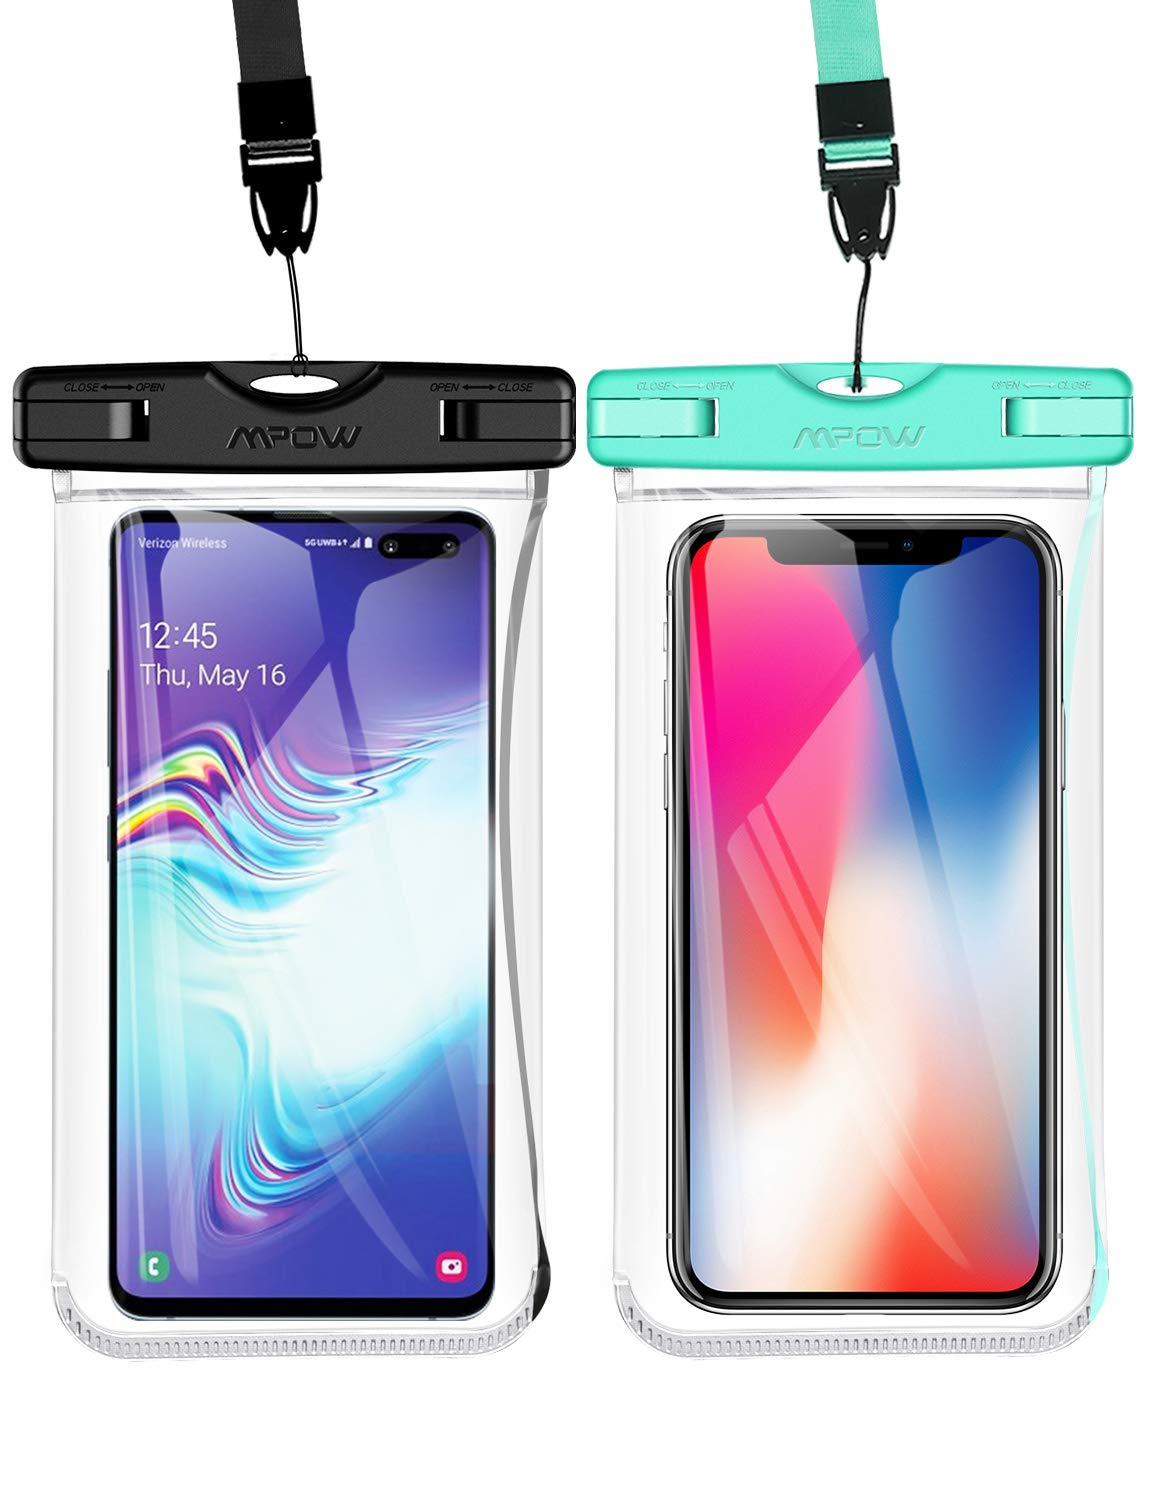 Mpow Waterproof Phone Pouch, New Type TPU Waterproof Case, One-Piece Design Underwater Cellphone Dry Bag Compatible with iPhone Xs Max/XS/XR/X, Galaxy S10, Note 9, Google up to 6.5 Inches(Black+Green) by Mpow